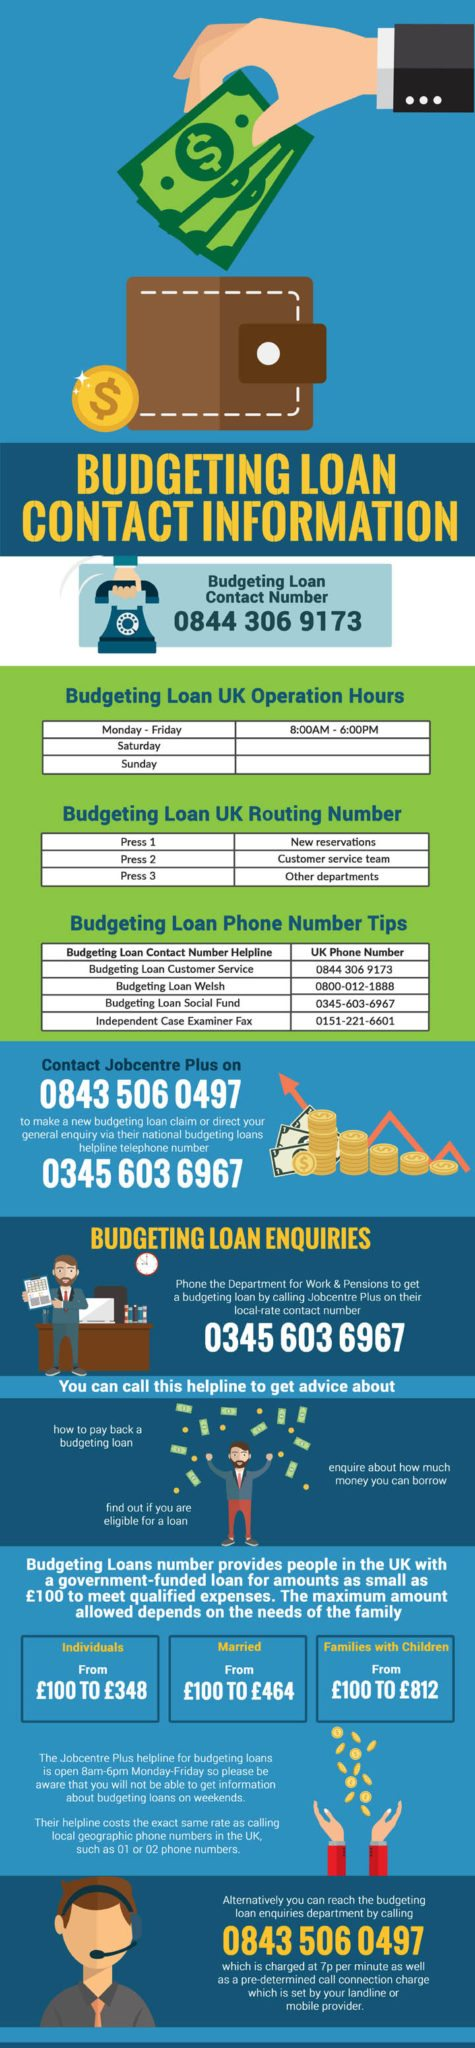 Budgeting Loan Contact Number